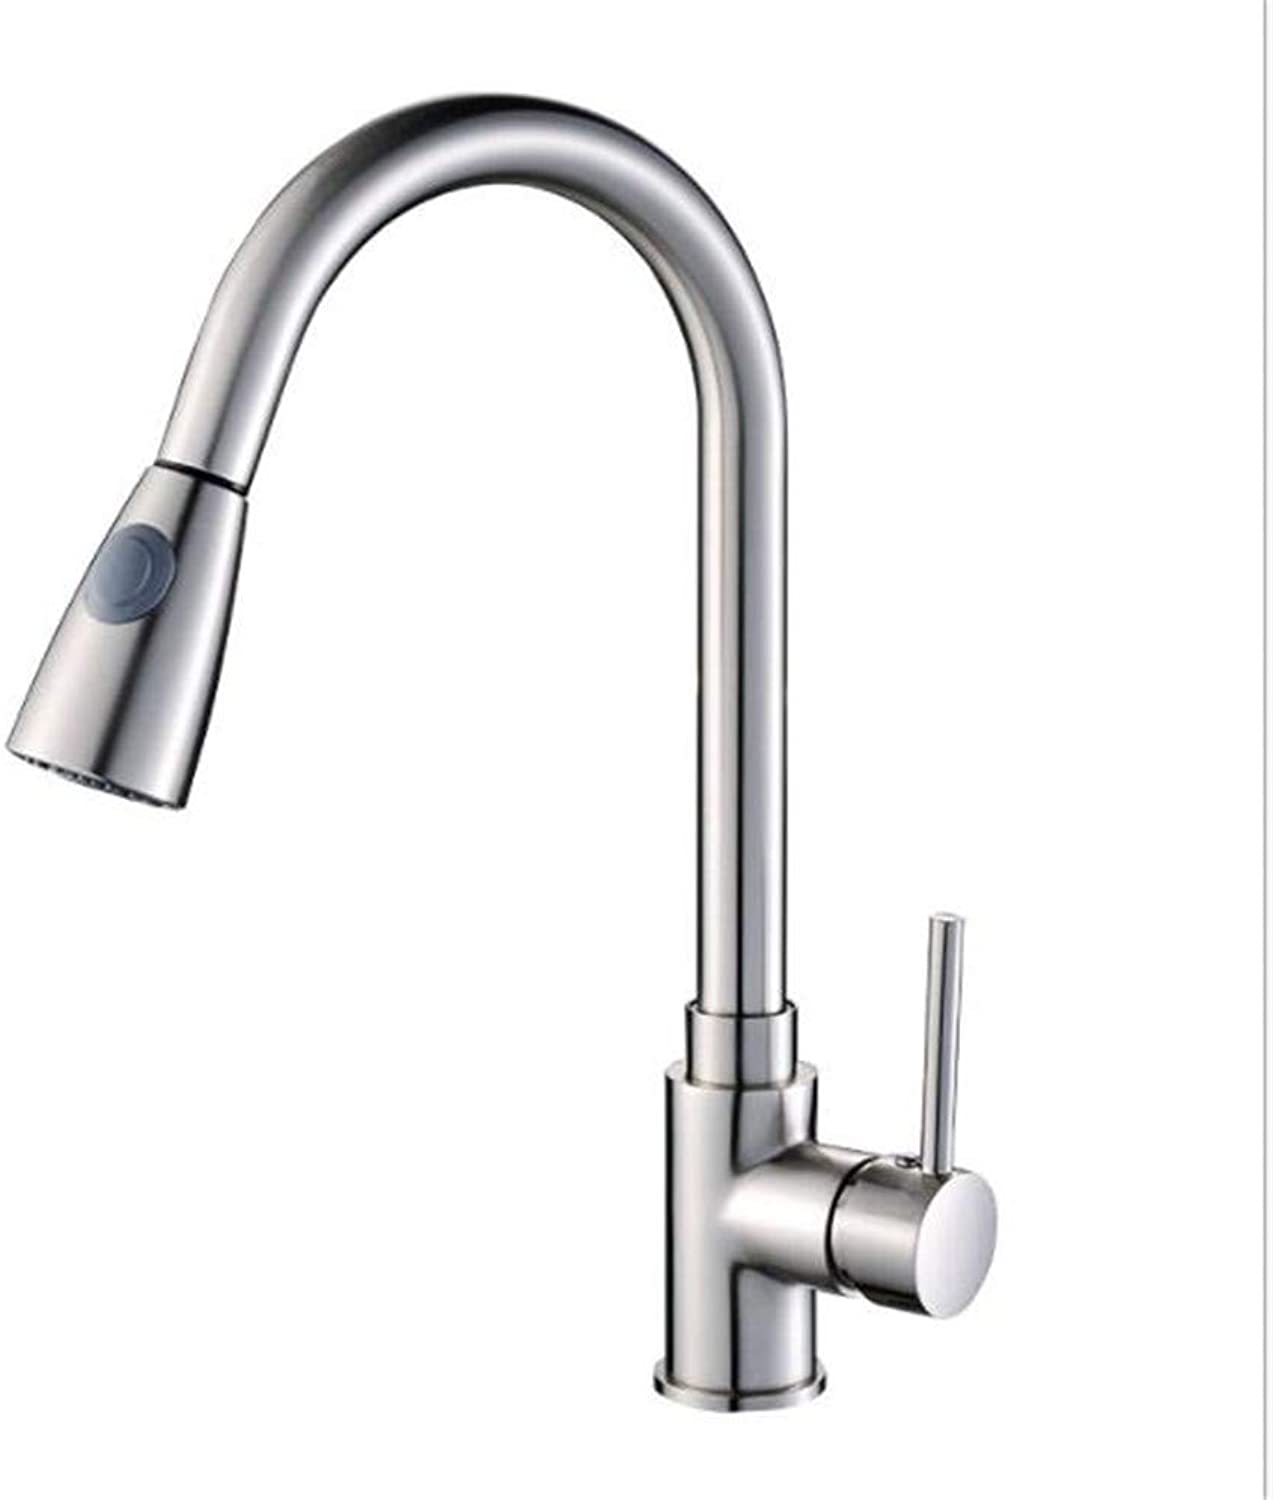 Bathroom Sink Basin Lever Mixer Tap Kitchen Faucet Wire Drawing Faucet Cold and Hot Water Faucet Sink Pulling Faucet